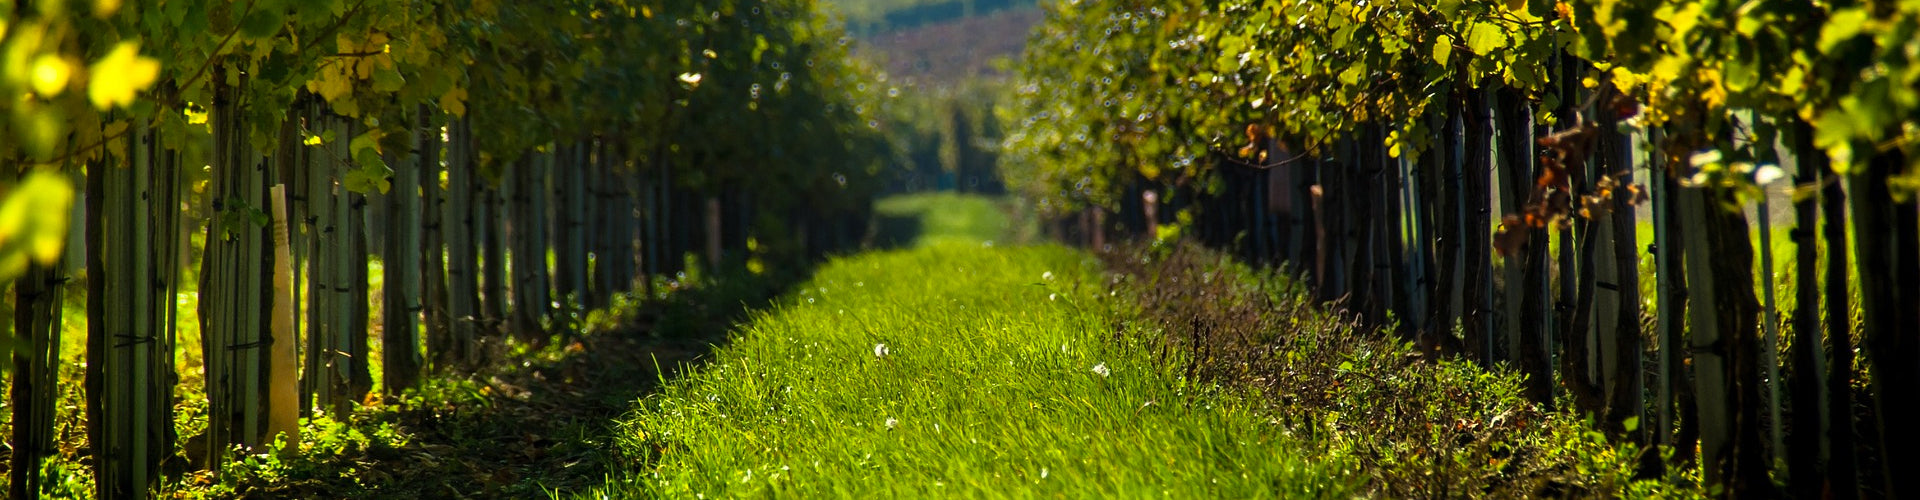 Organic Vineyards and Crop Cover